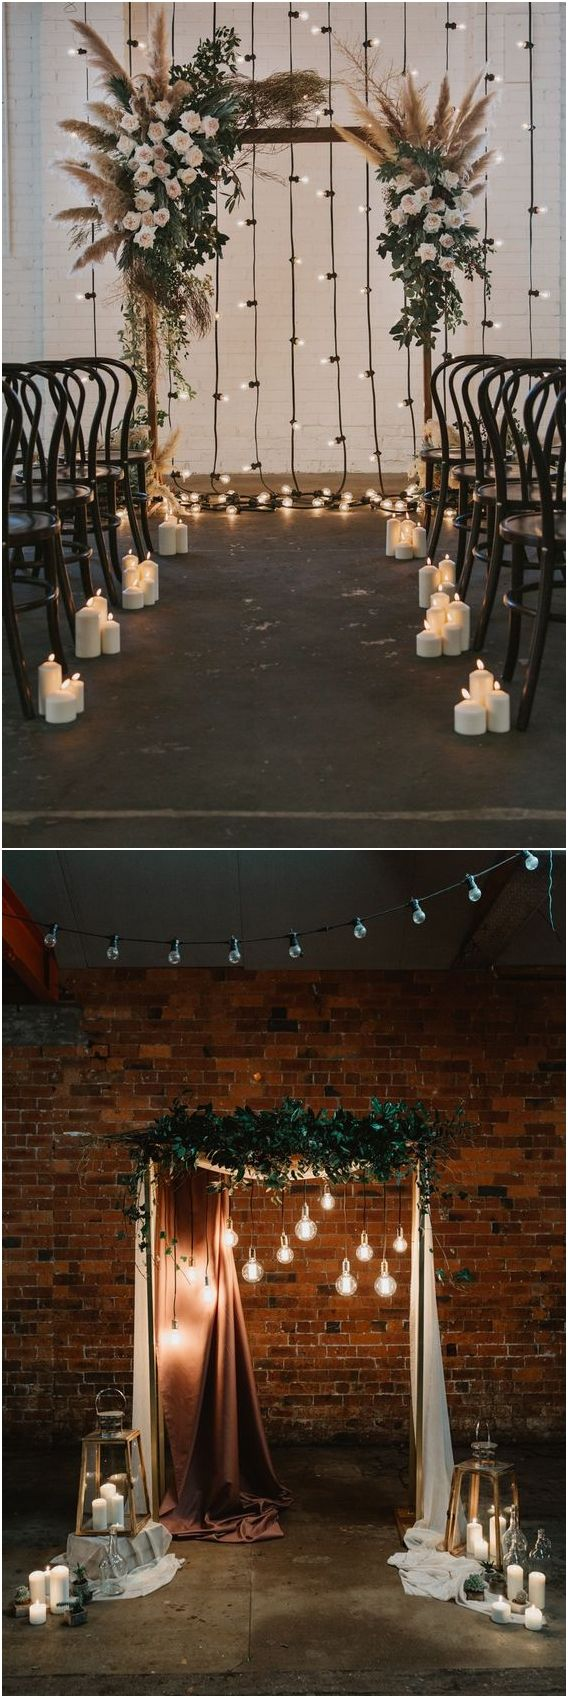 20 Industrial Loft-style Wedding Ceremony Backdrop Ideas